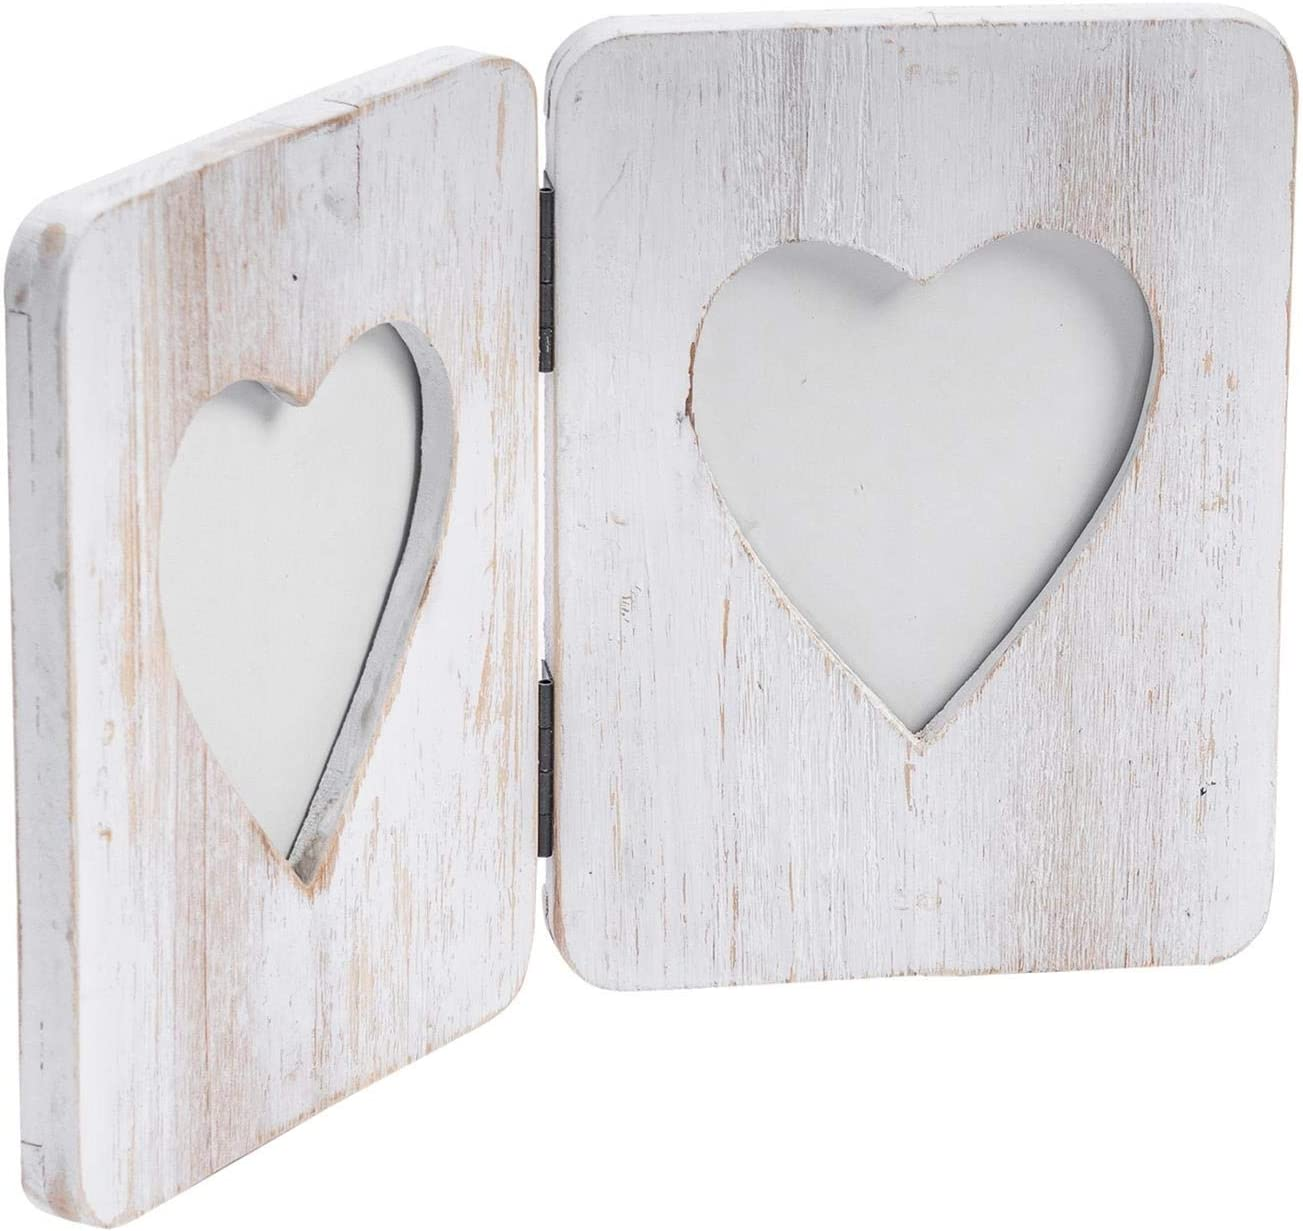 Nicola Spring Double White Max 63% OFF Wooden Picture Freestanding Super beauty product restock quality top Photo Fra